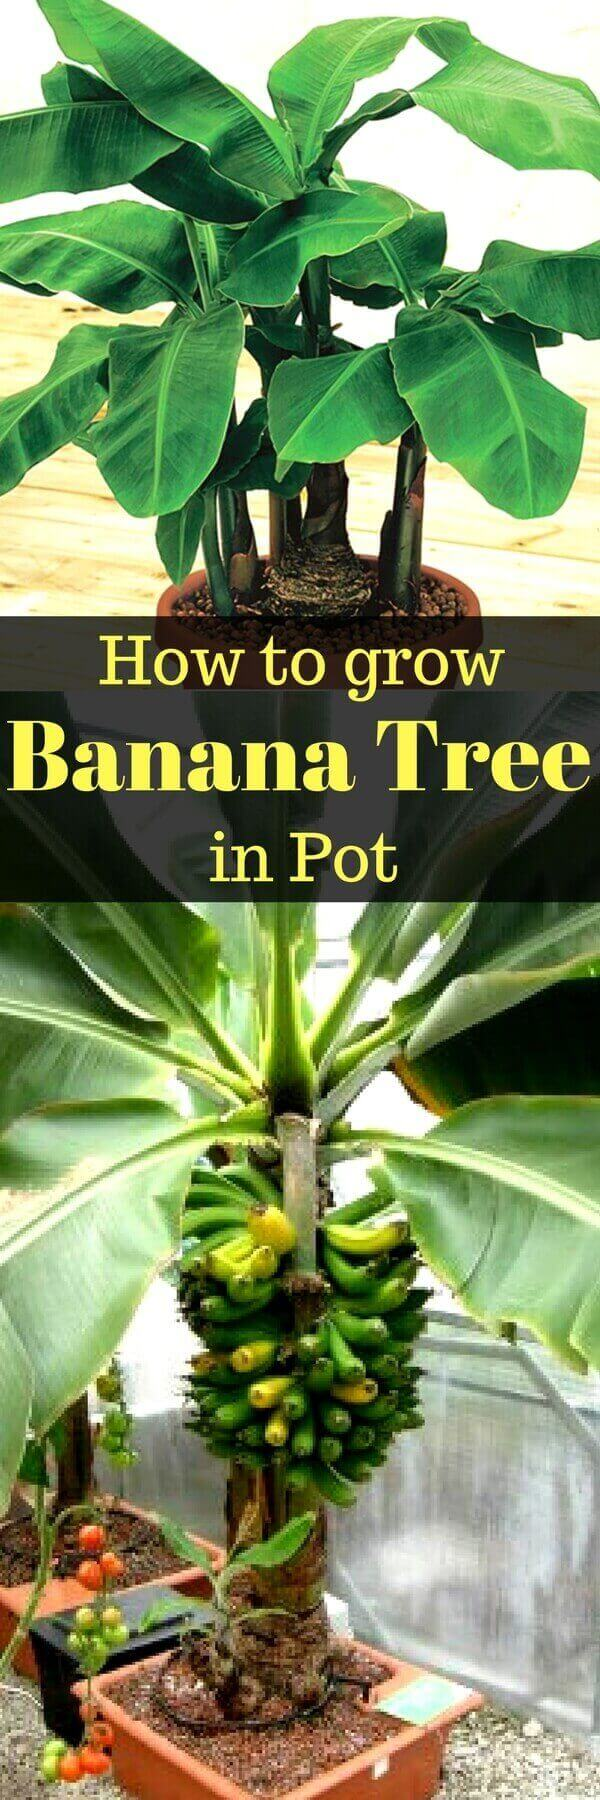 How to Grow Banana Tree in Pot